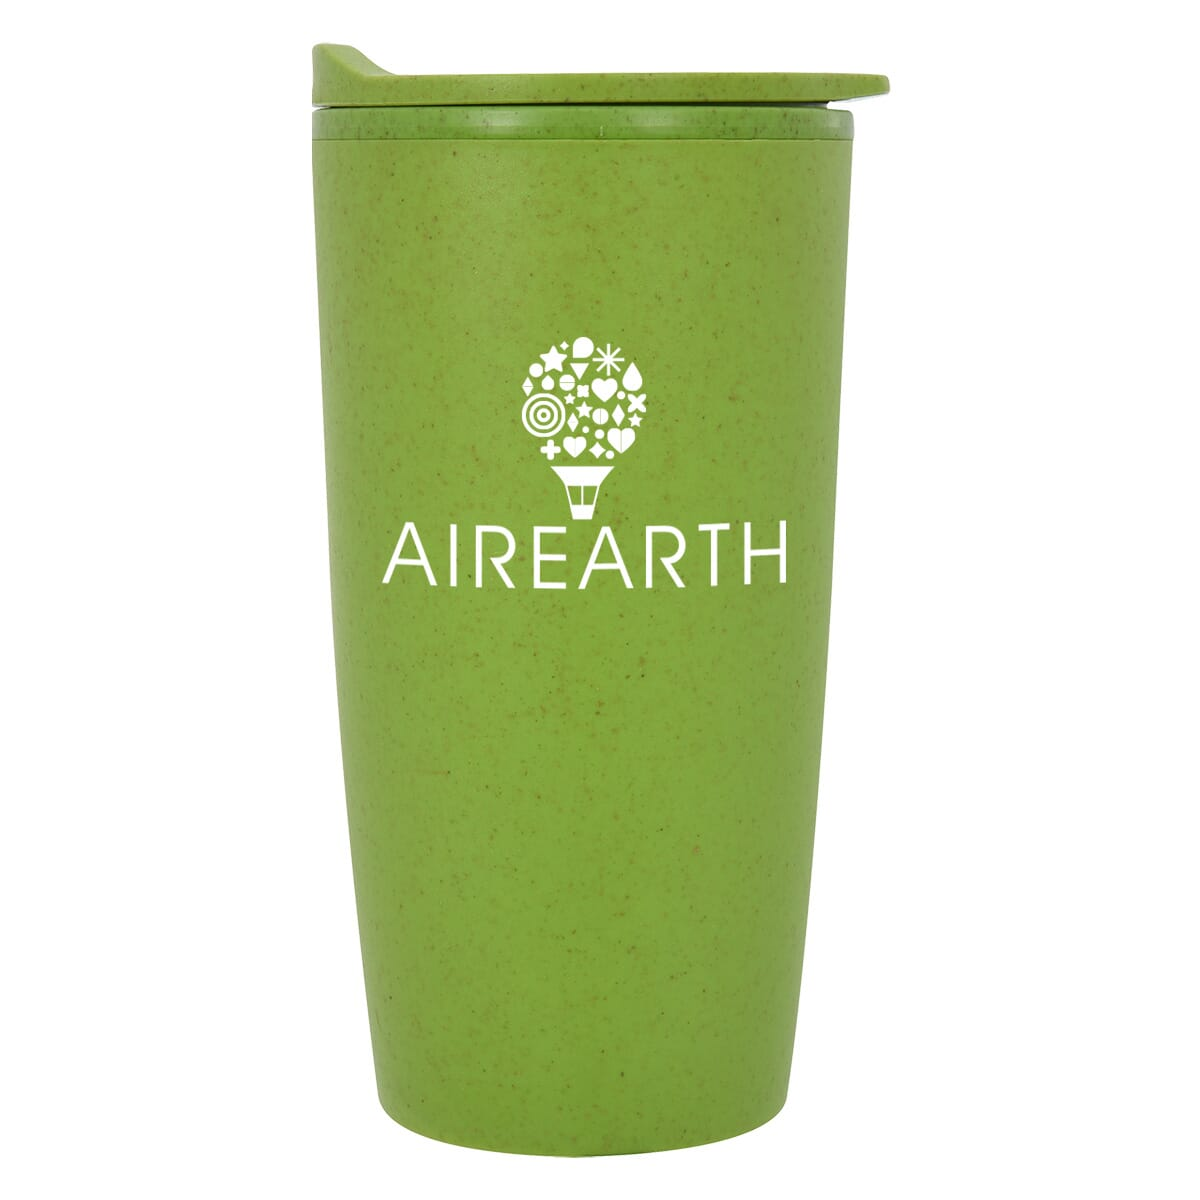 green travel mug made of eco friendly wheat material